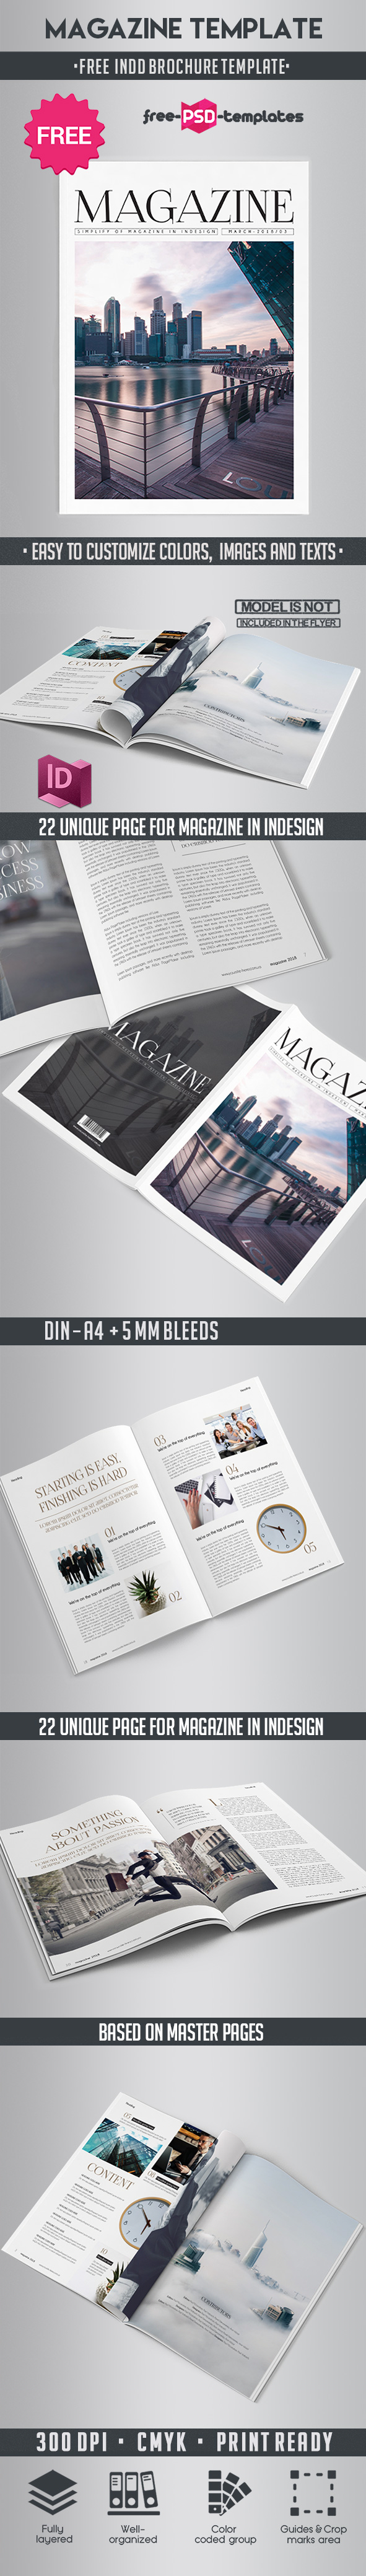 Free Magazine Indd Template Free Psd Templates